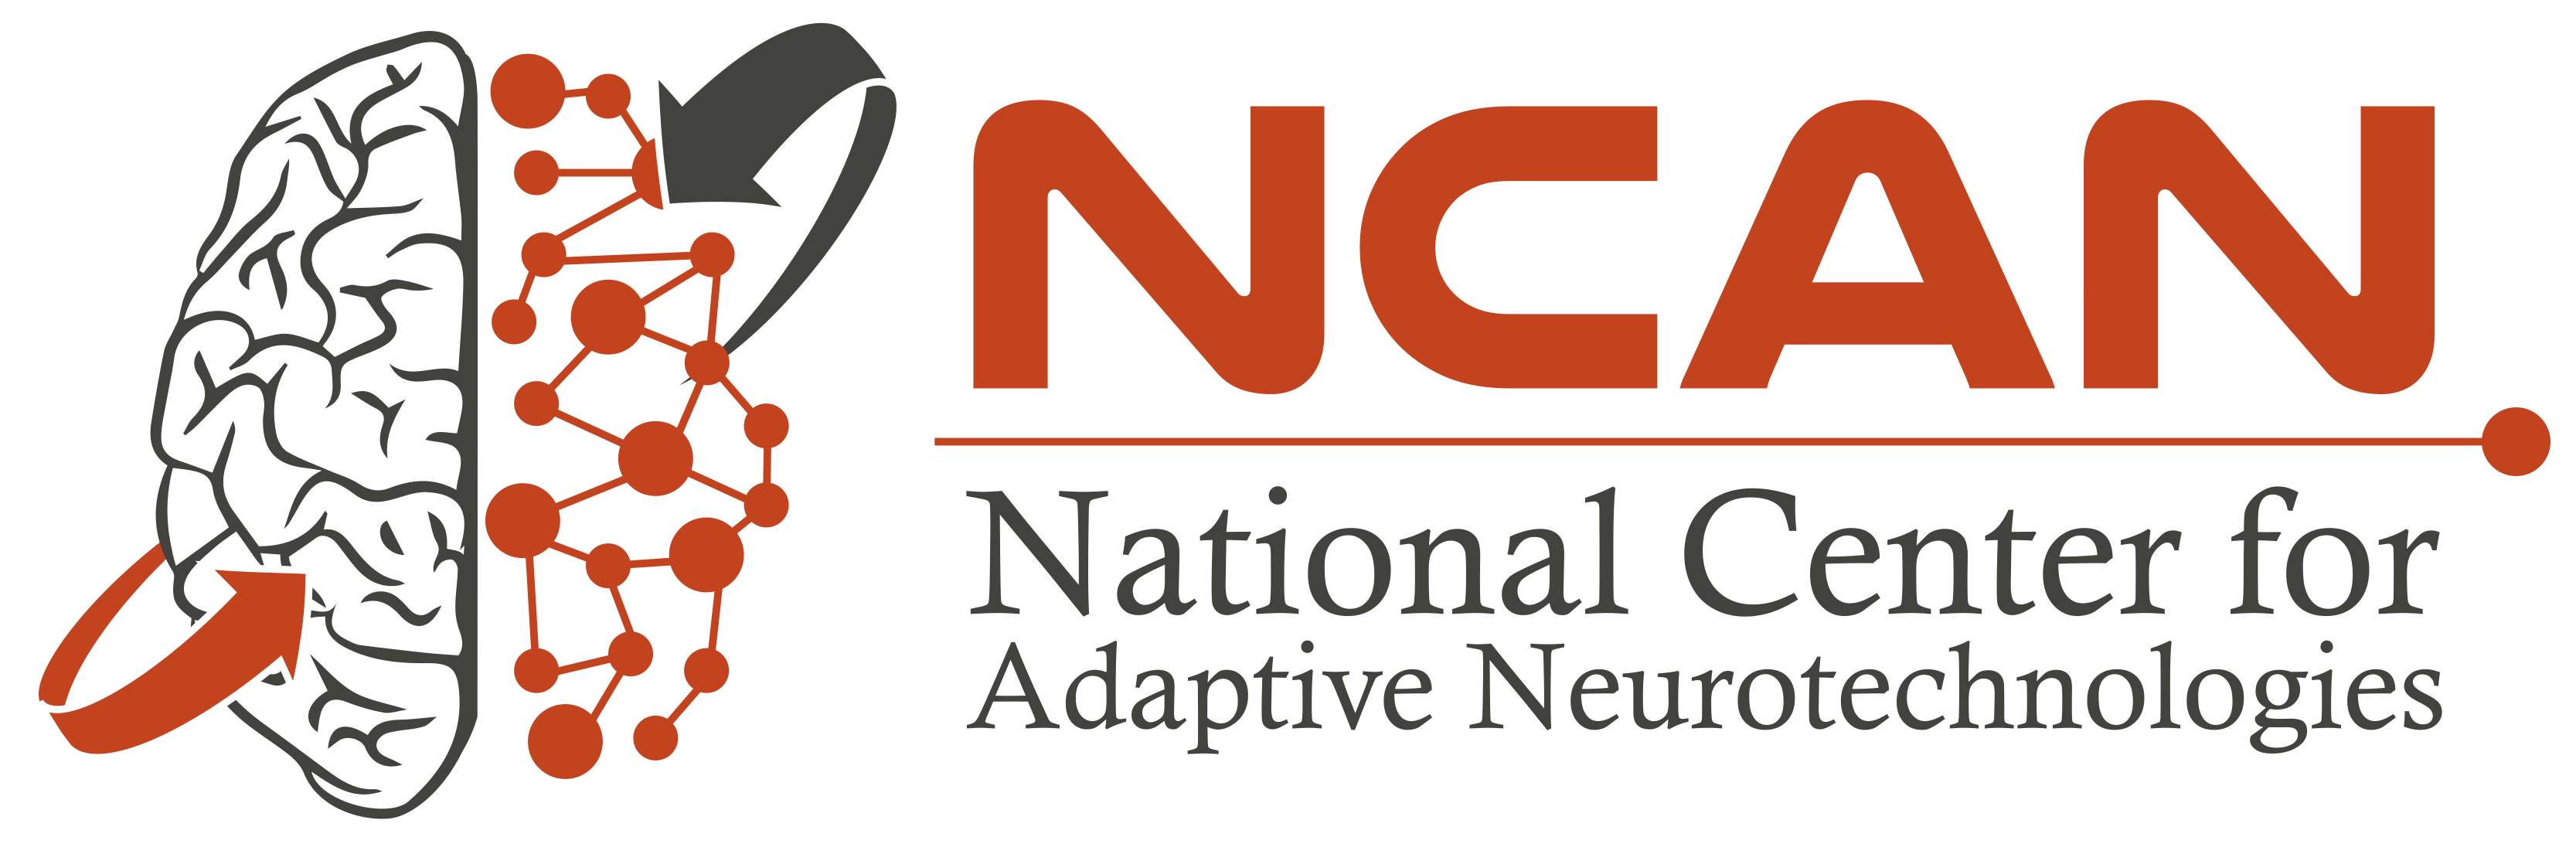 Course Faculty | National Center for Adaptive Neurotechnologies